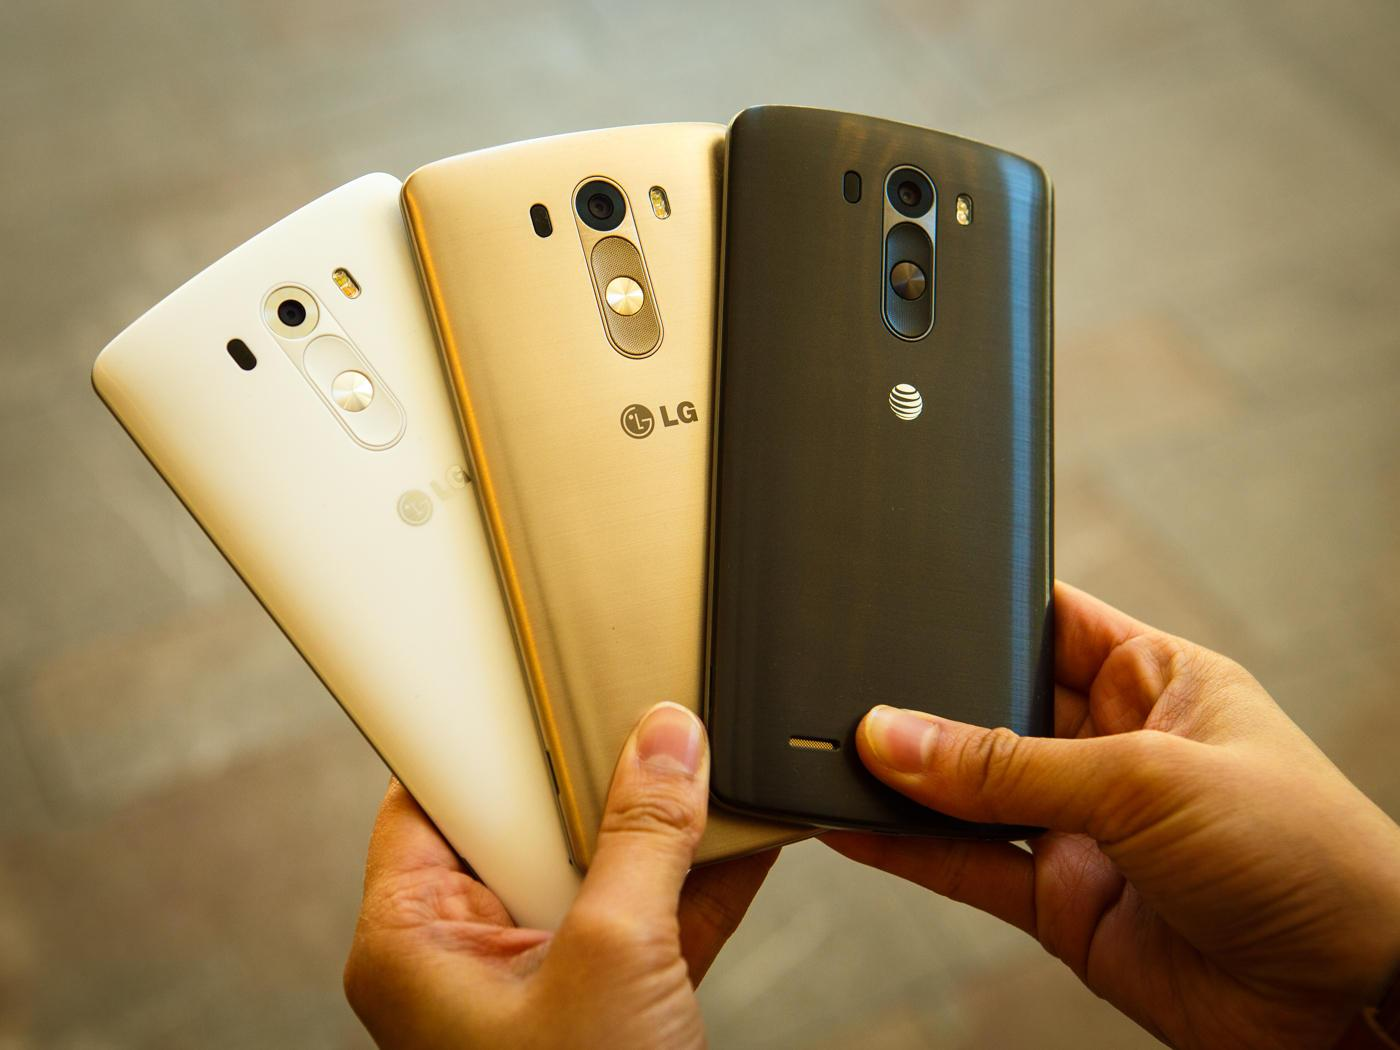 LG to sell new flagship G4 phone starting April 29